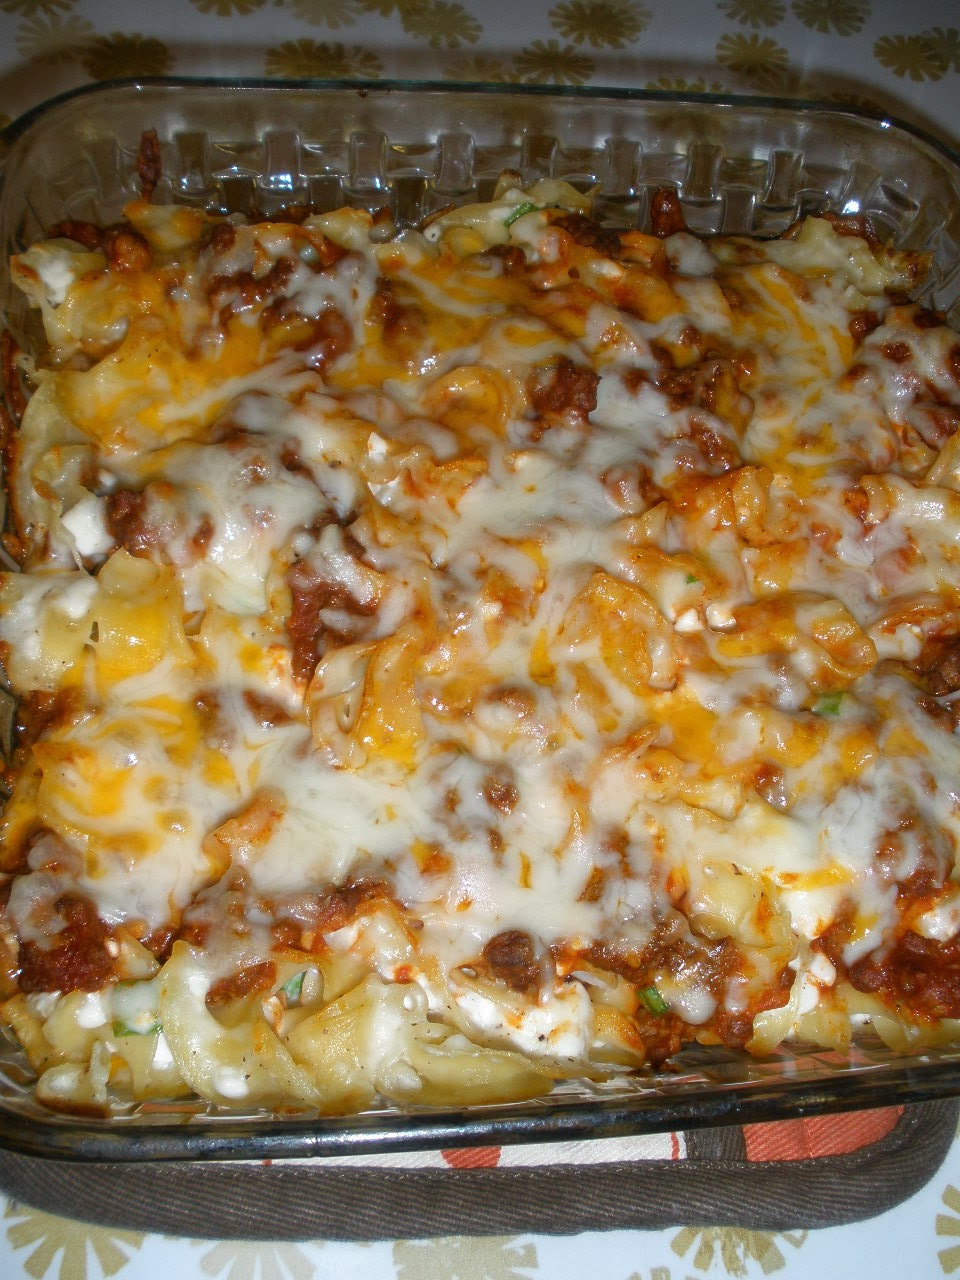 Rachel's Recipes: 'Sour Cream Noodle Bake' / 'Easy Lasagna'